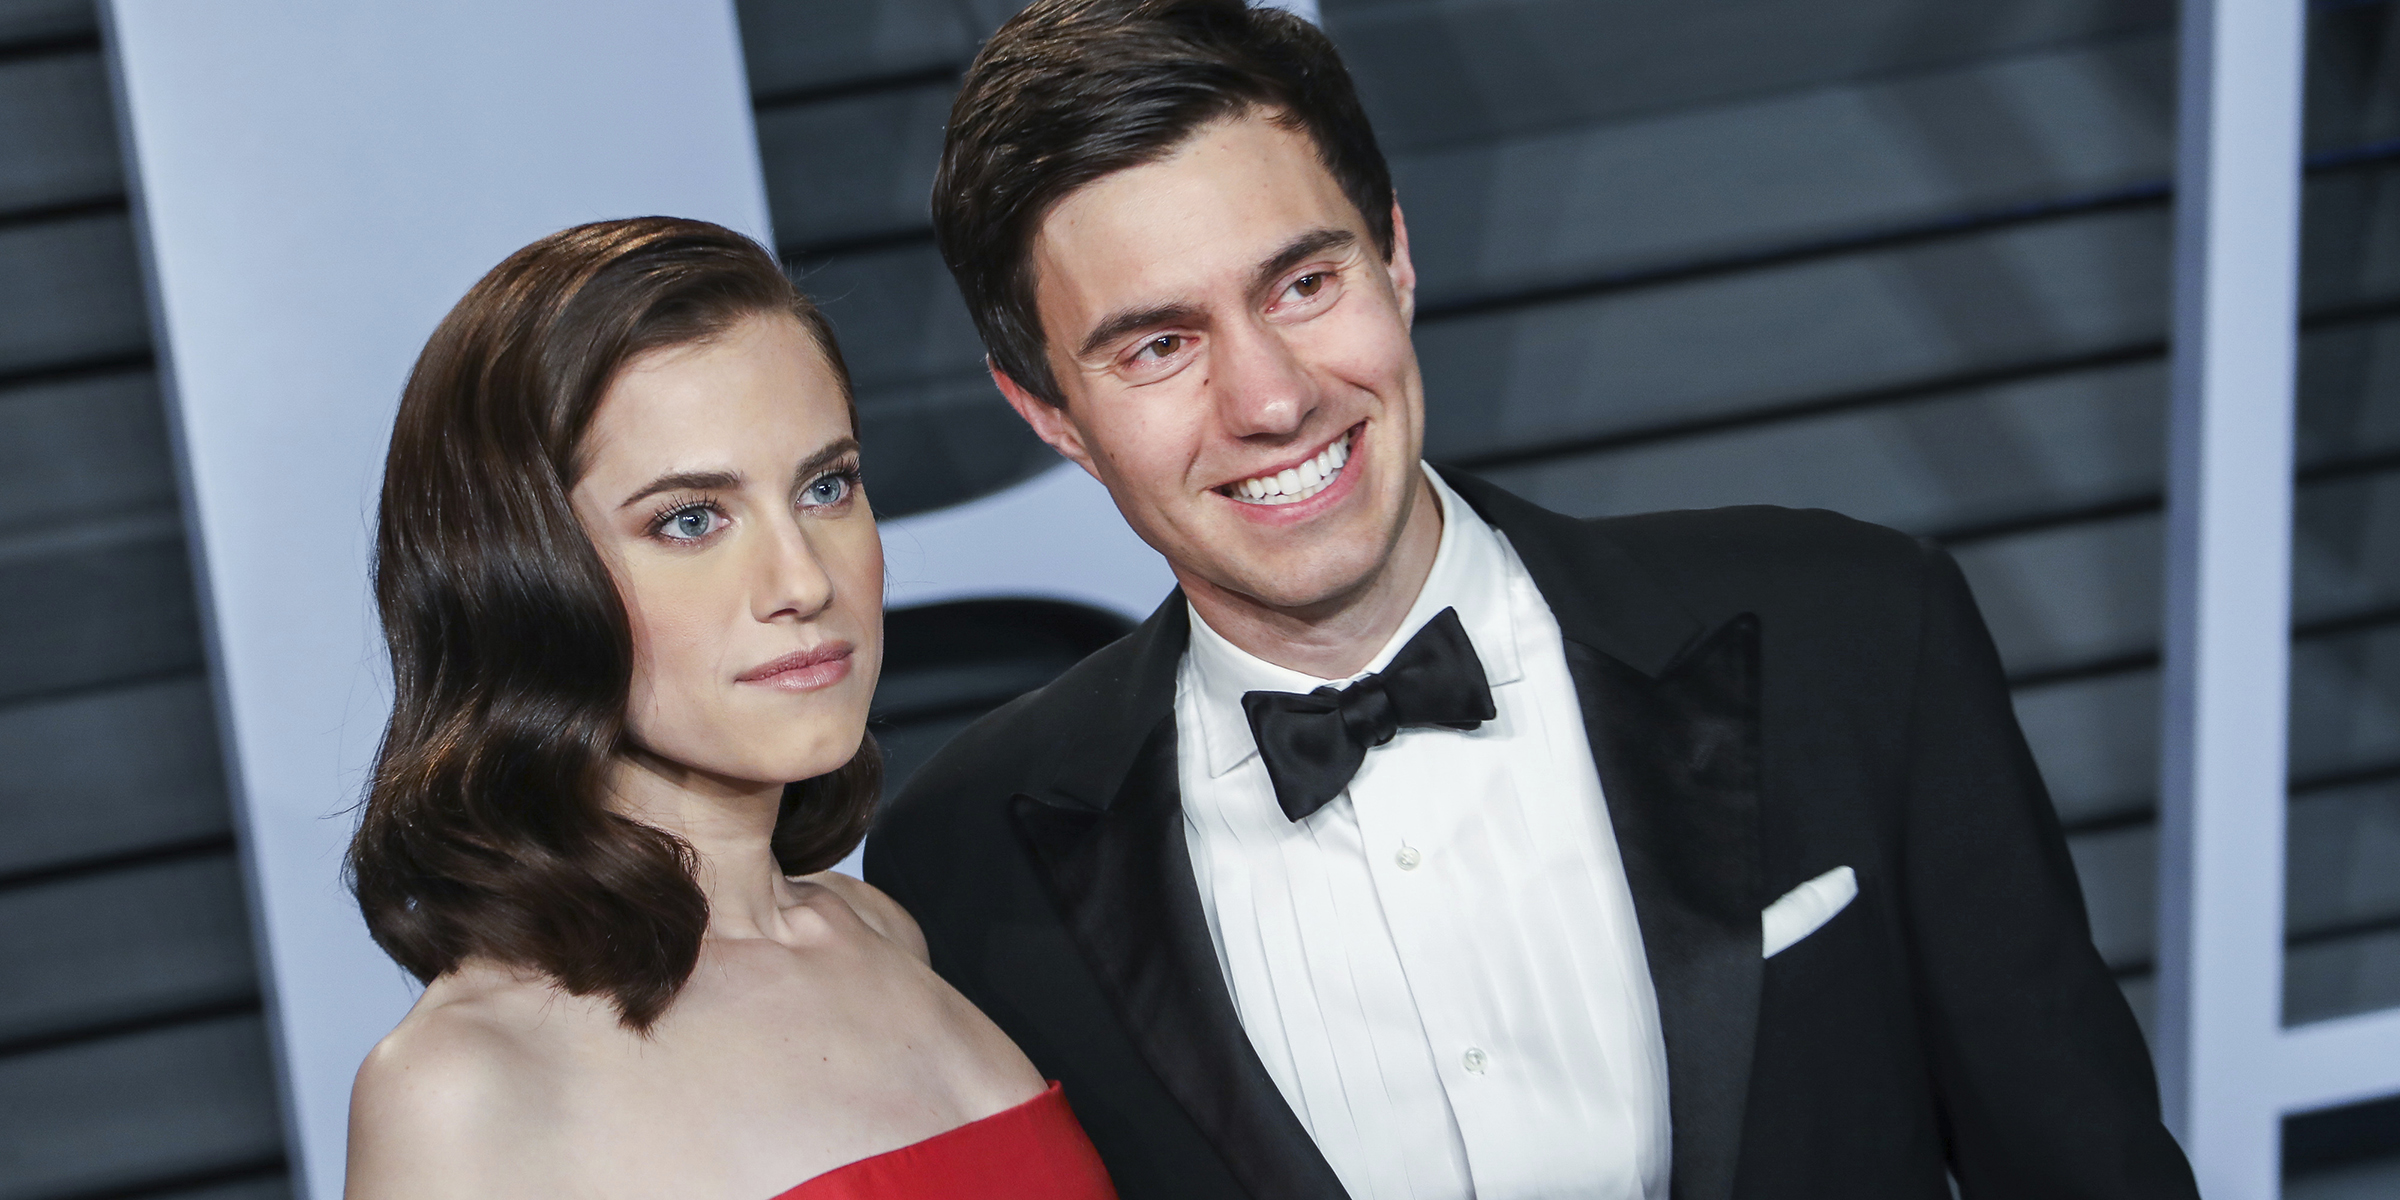 Allison Williams, Ricky Van Veen announce separation after 4 years of marriage